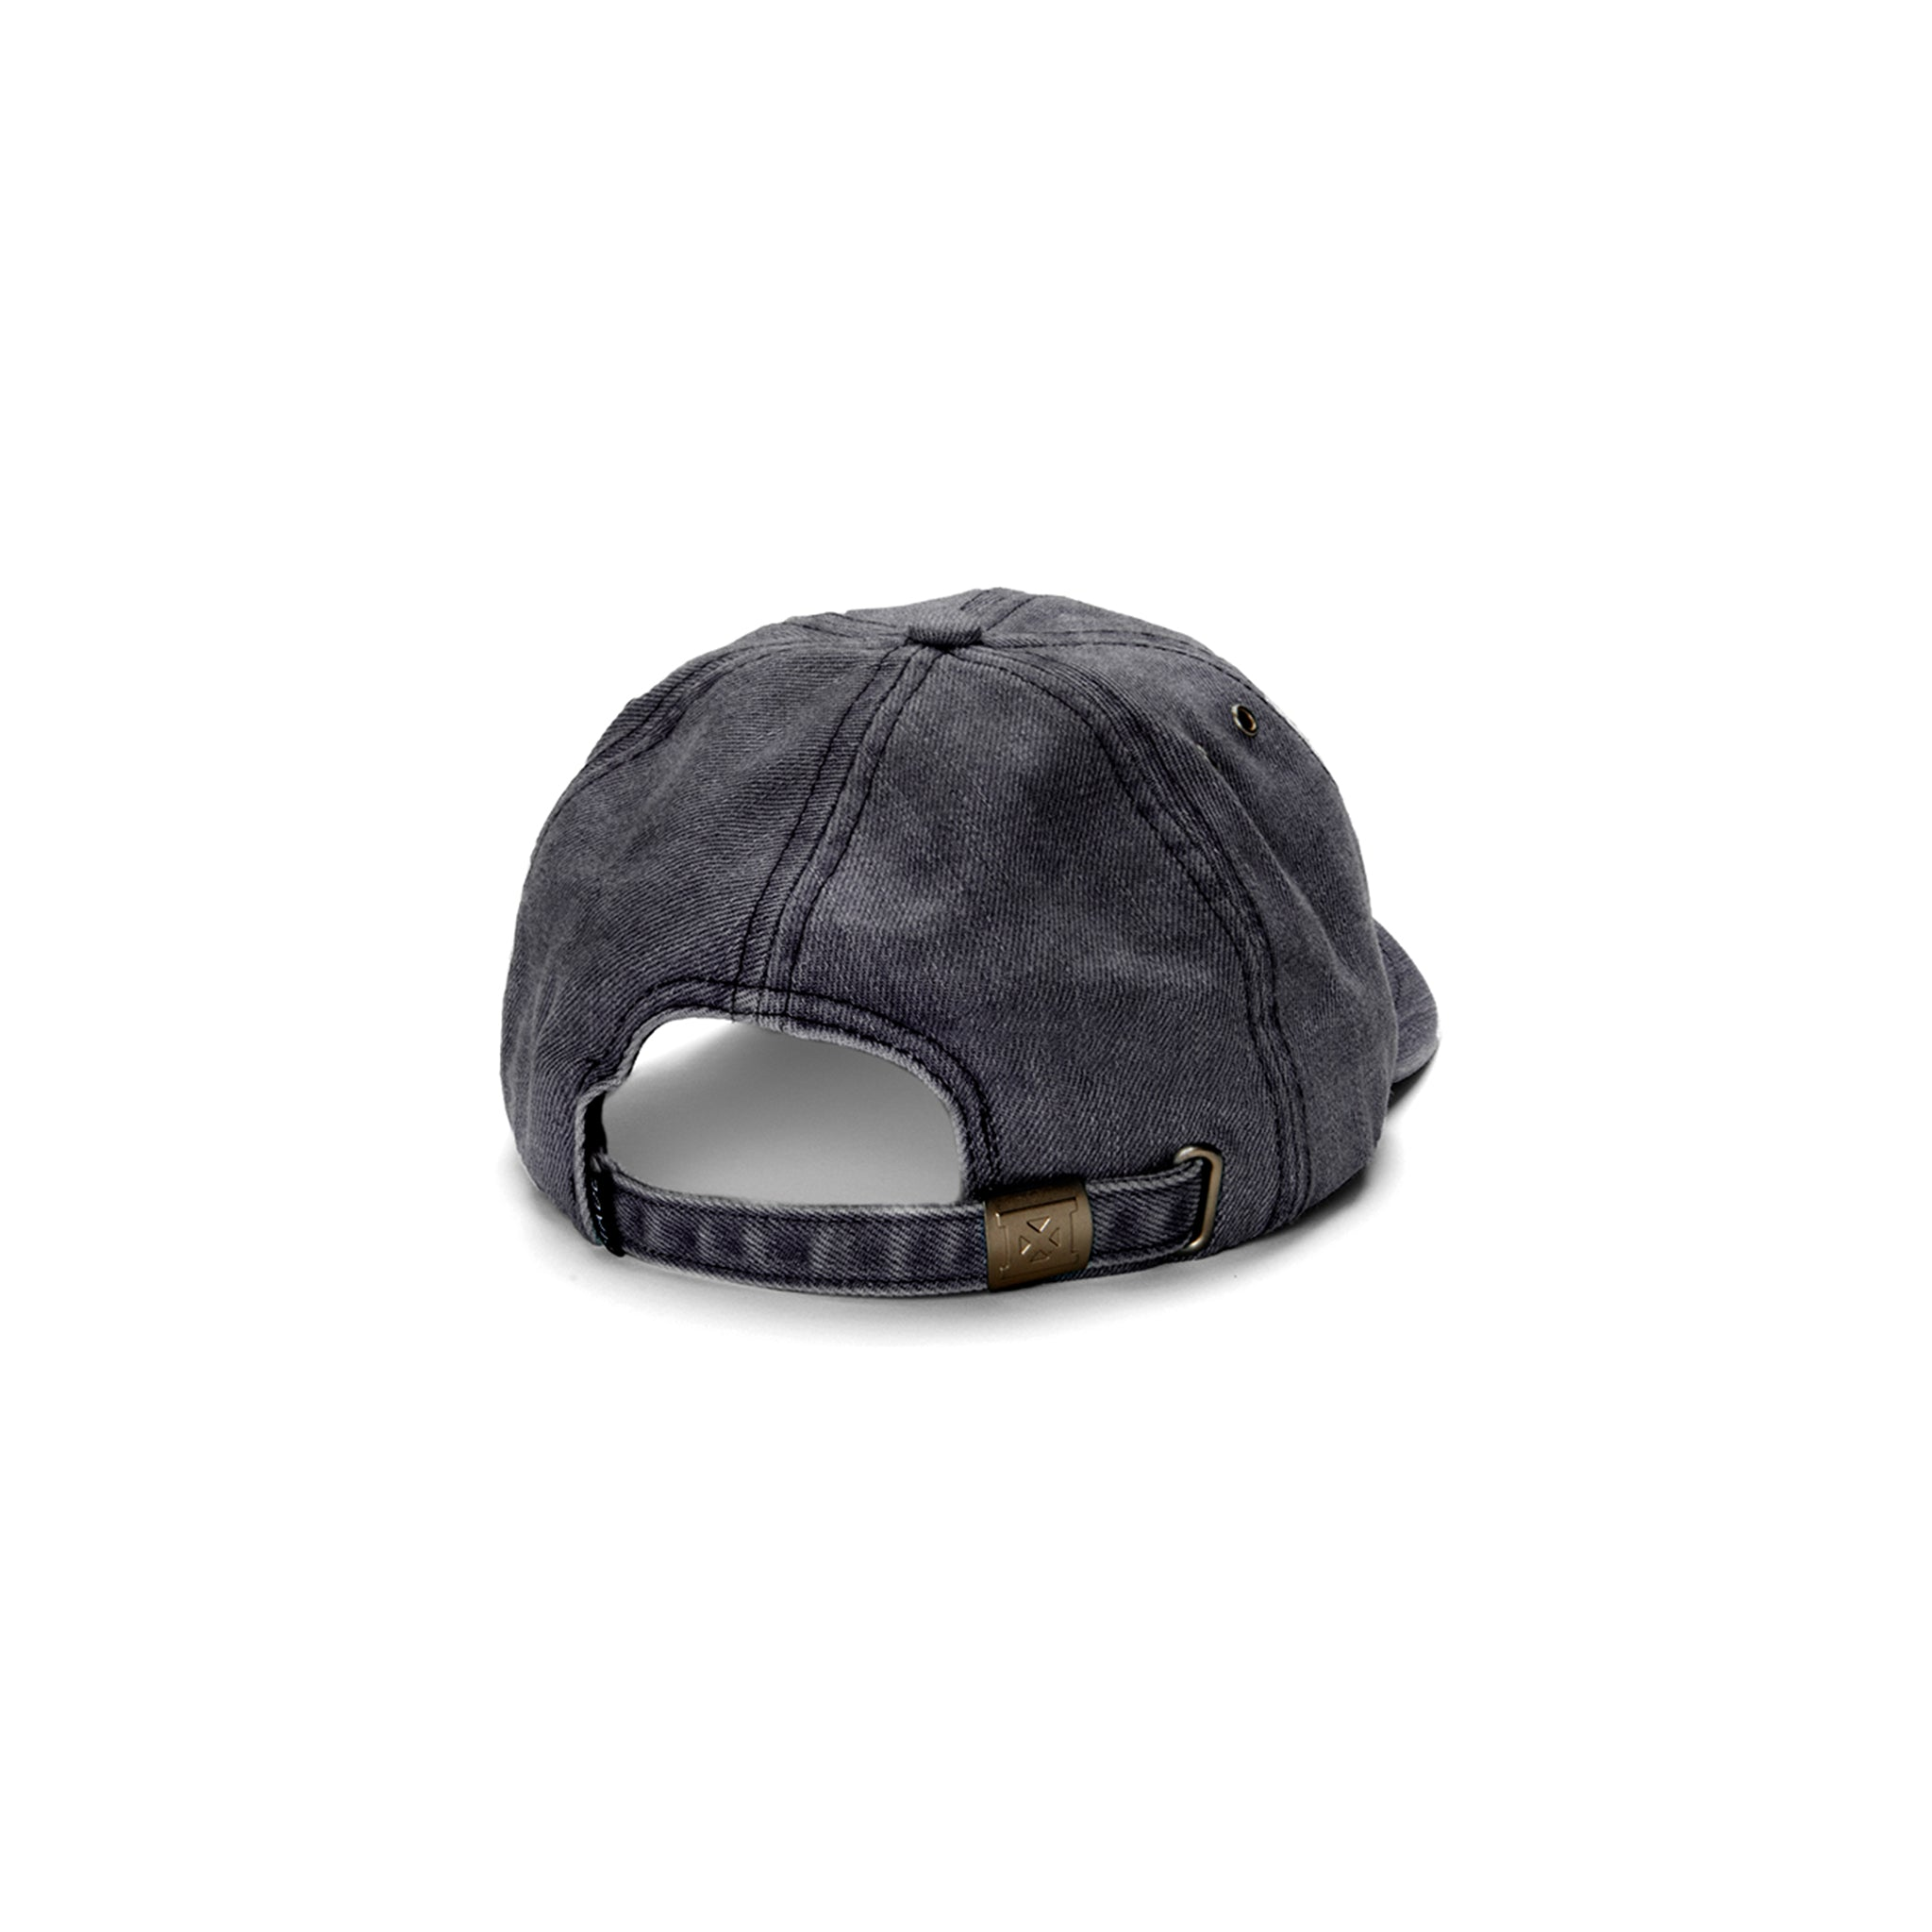 Signature KC Dad Hat - Black Denim